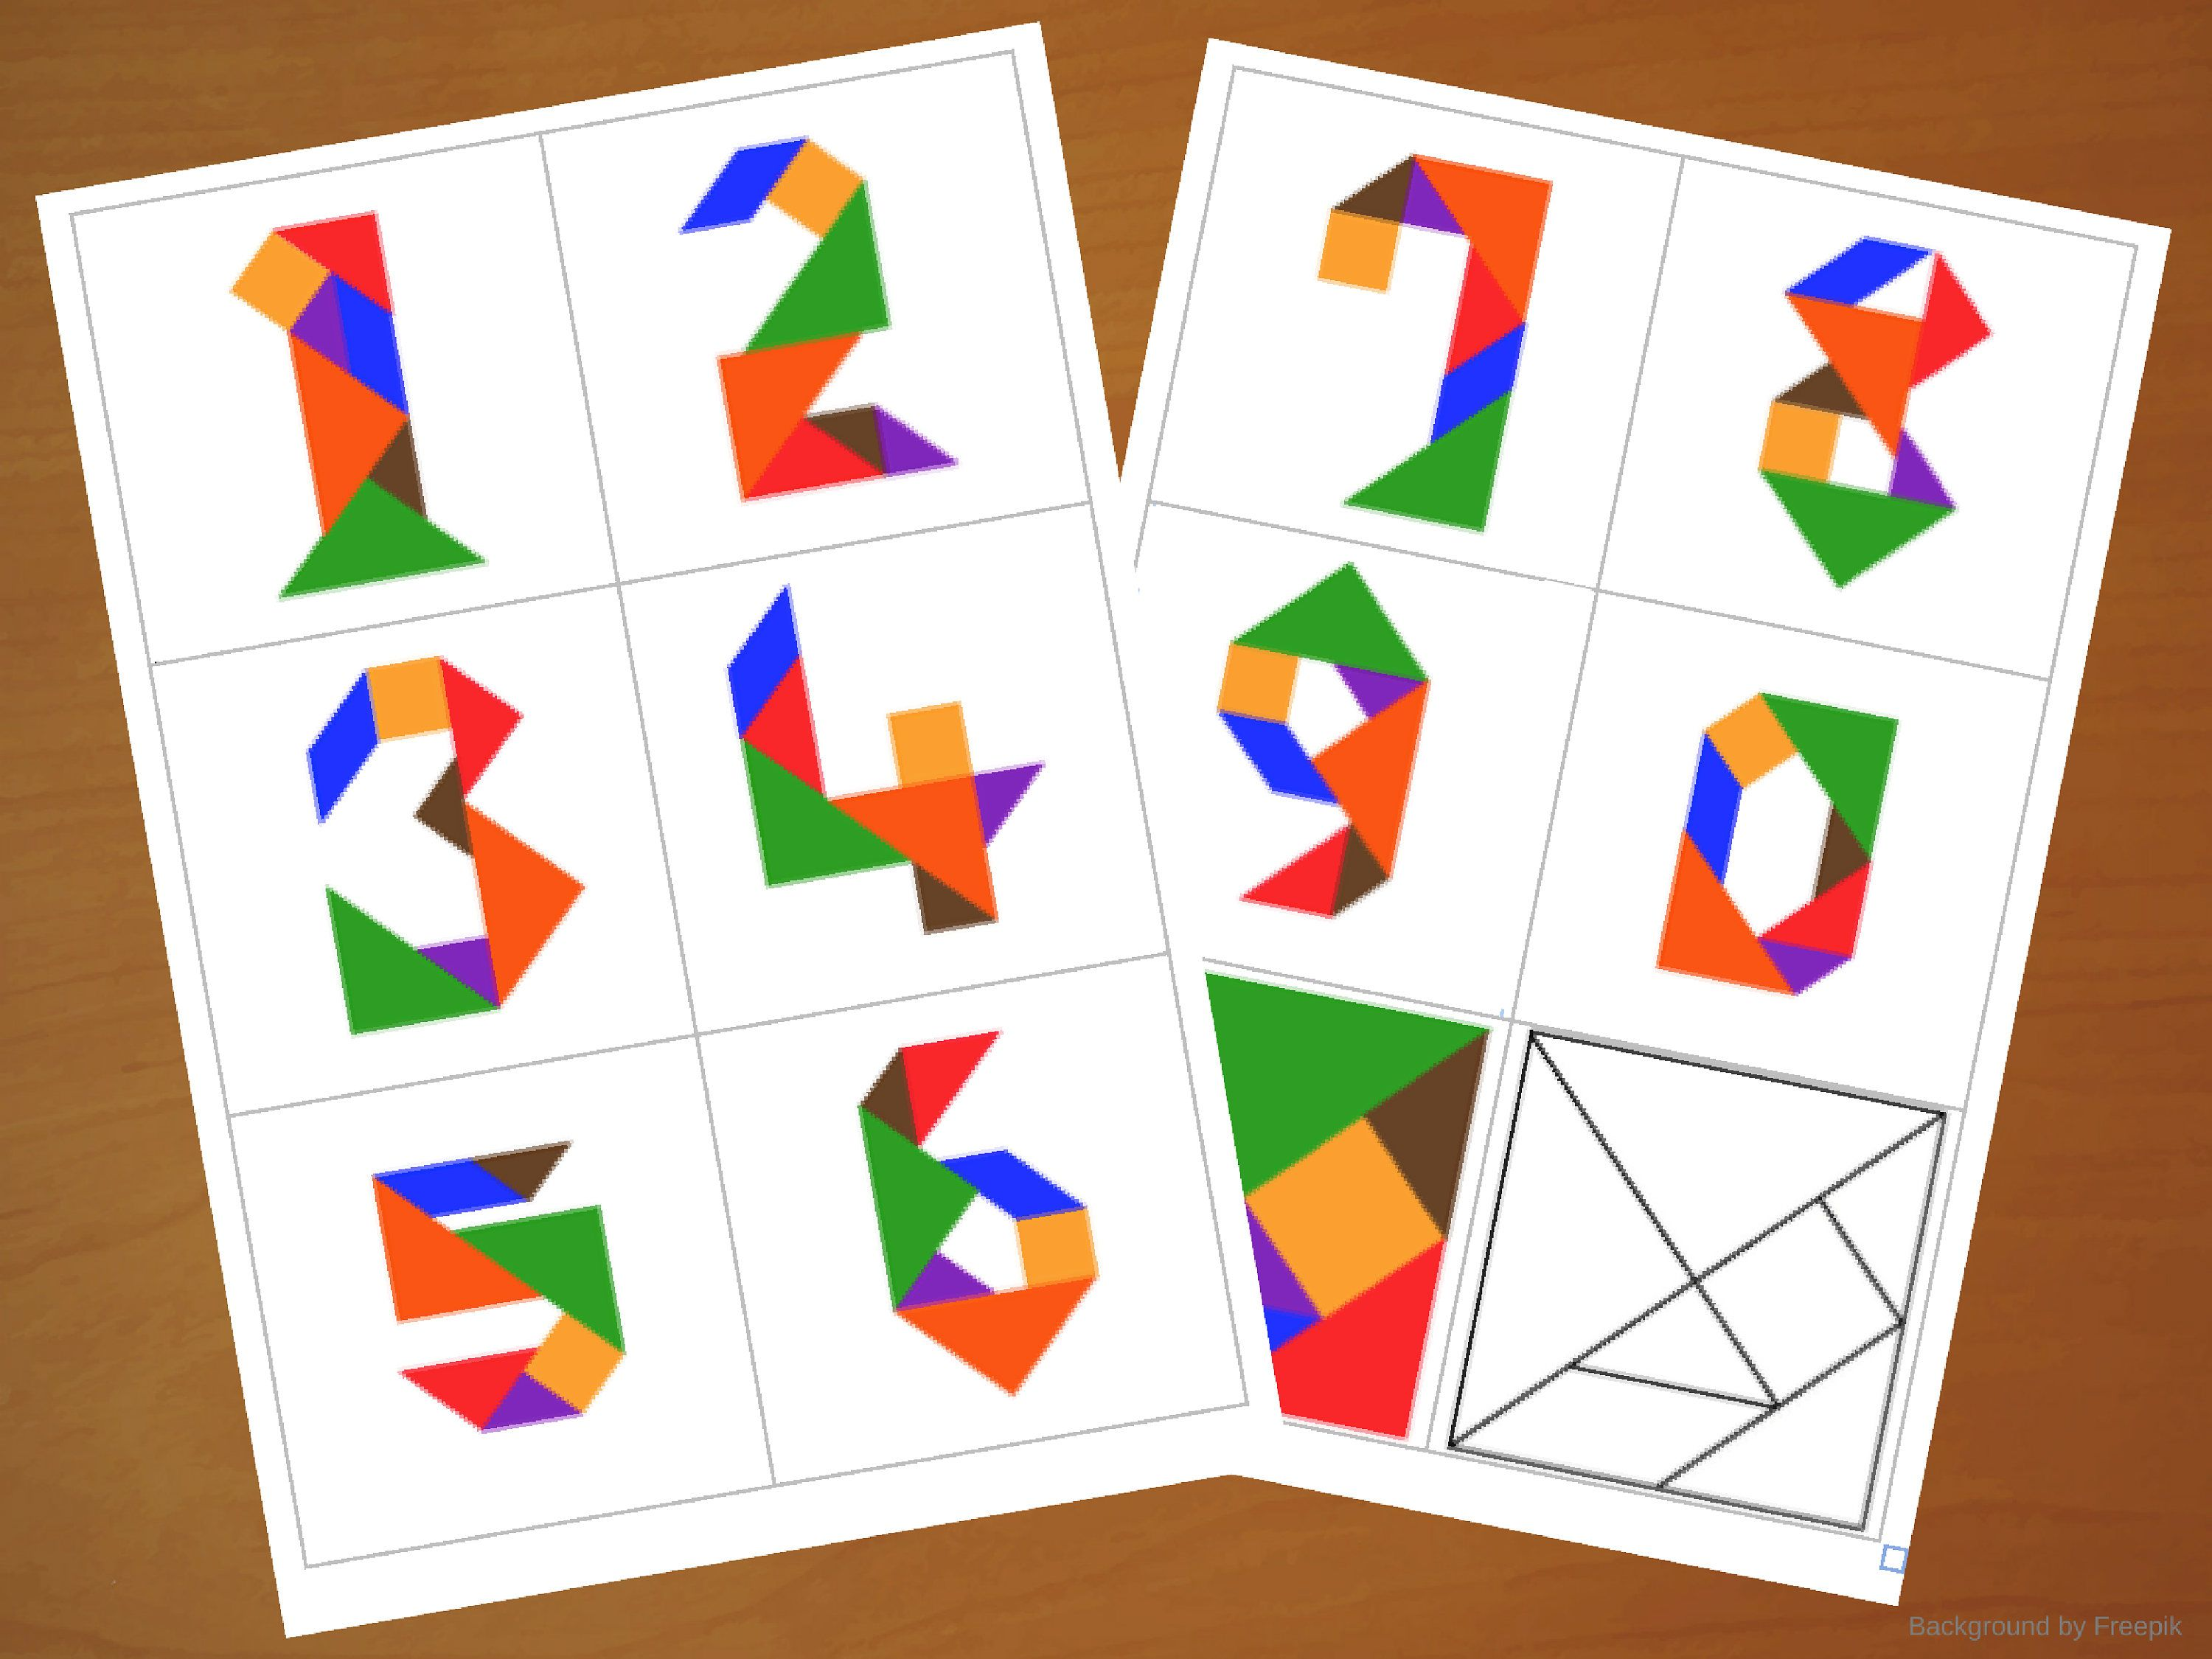 photograph regarding Tangrams Printable Pdf named Downloadable Tangram Playing cards - Tangram Figures - Tangram